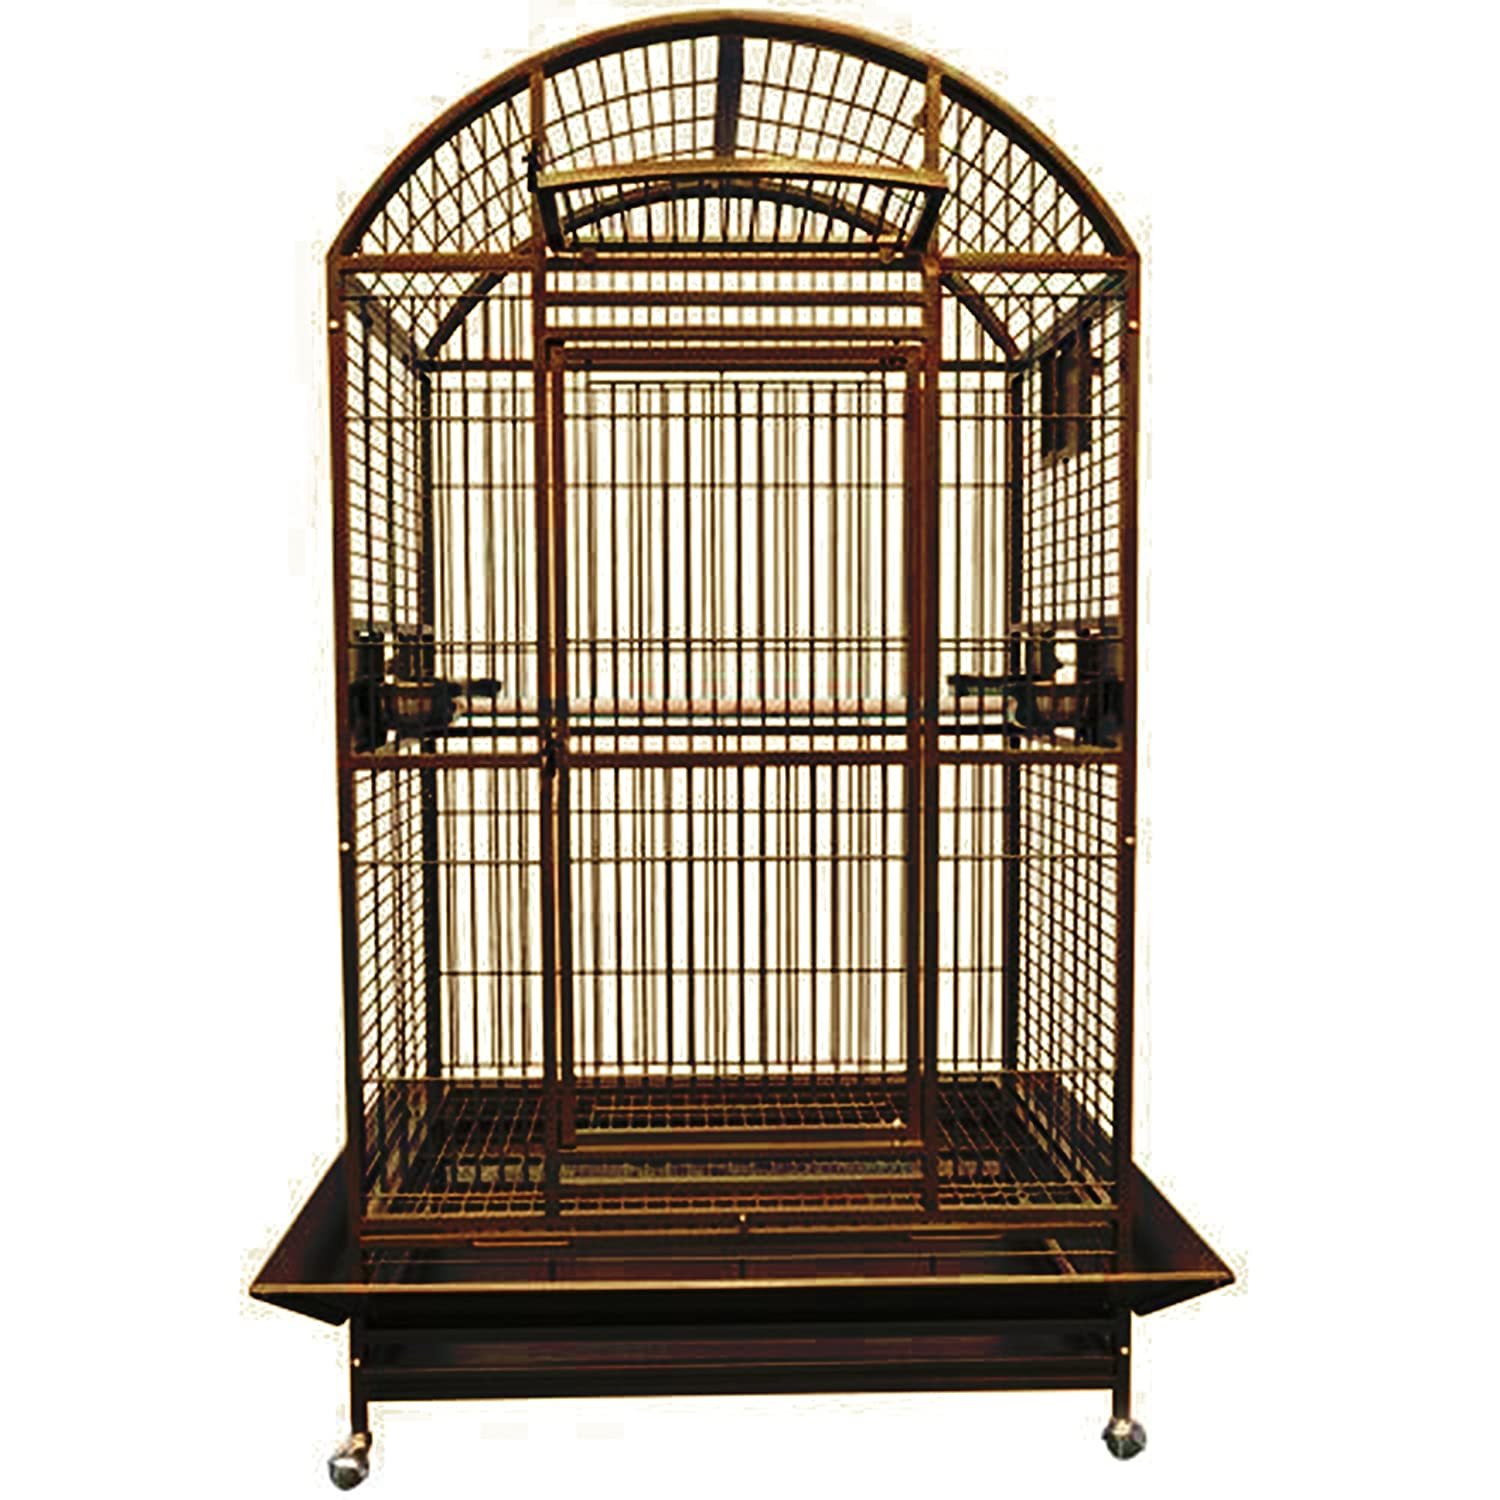 KING'S CAGES 9004030 PARROT CAGE Dome Top Bird Cage With New Locks toy toys  Macaws cockatoo